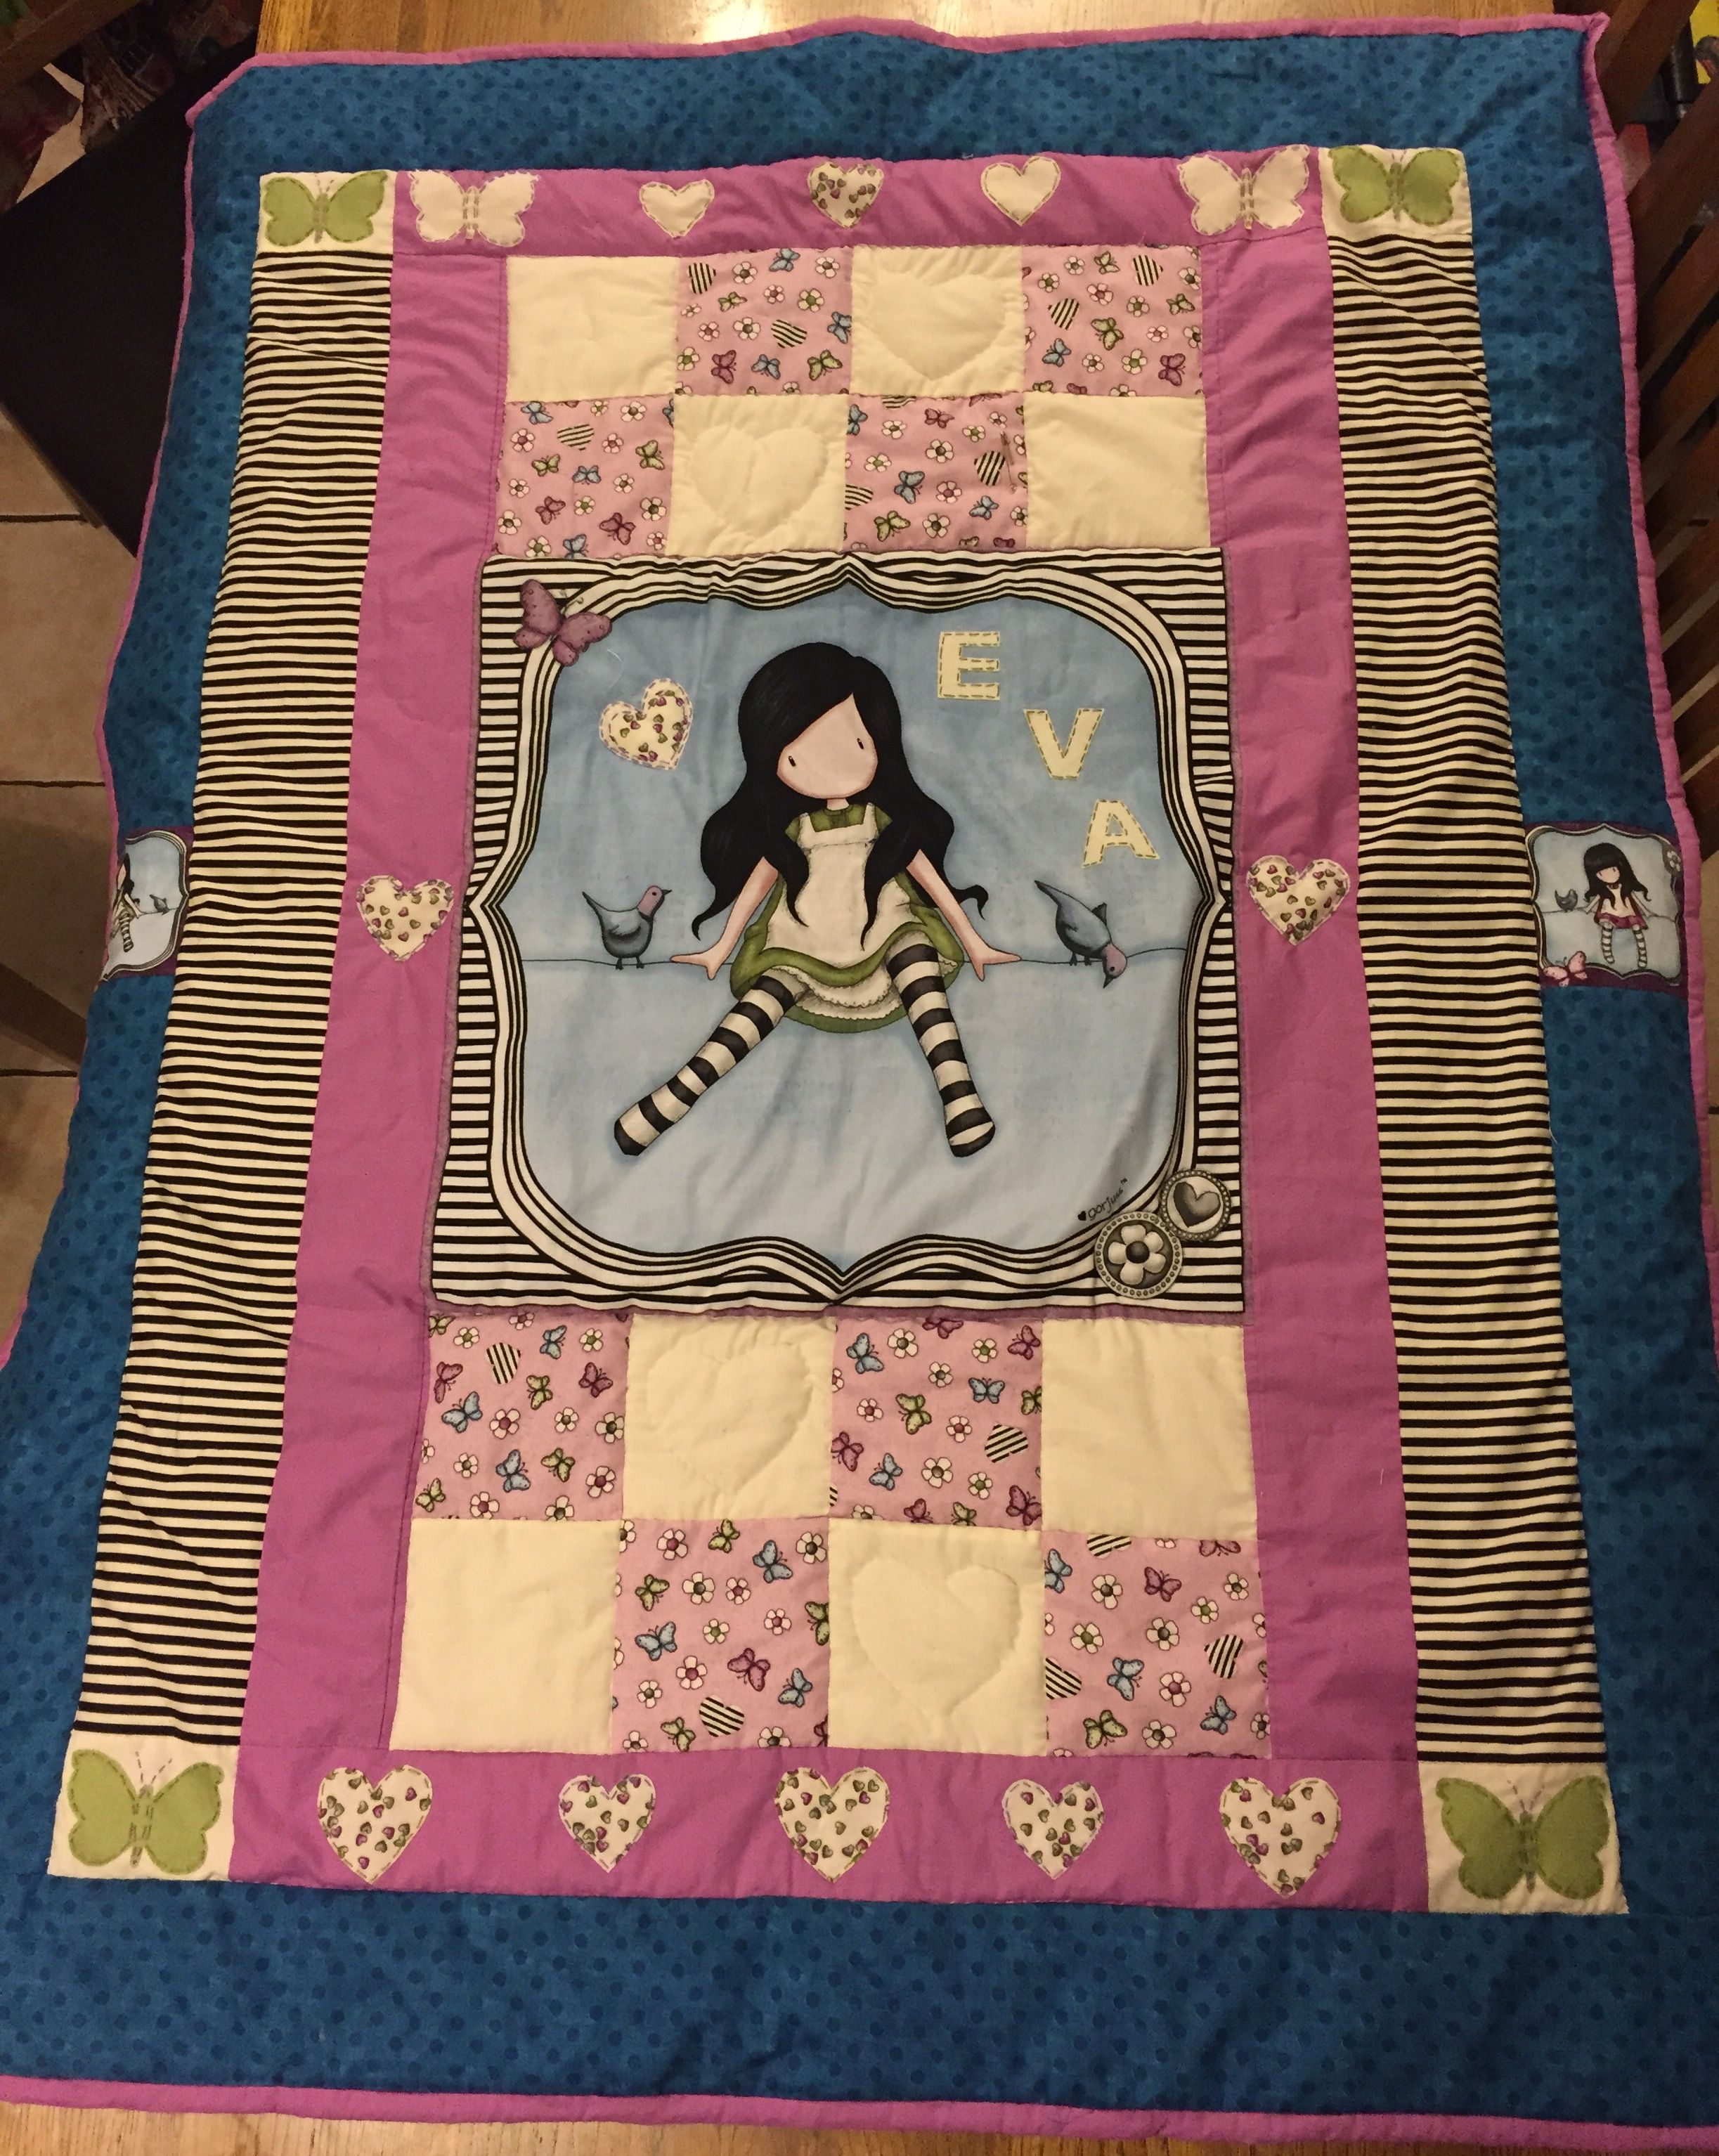 Gorjuss hand stitched patchwork quilt finished at last. Very happy with the results.